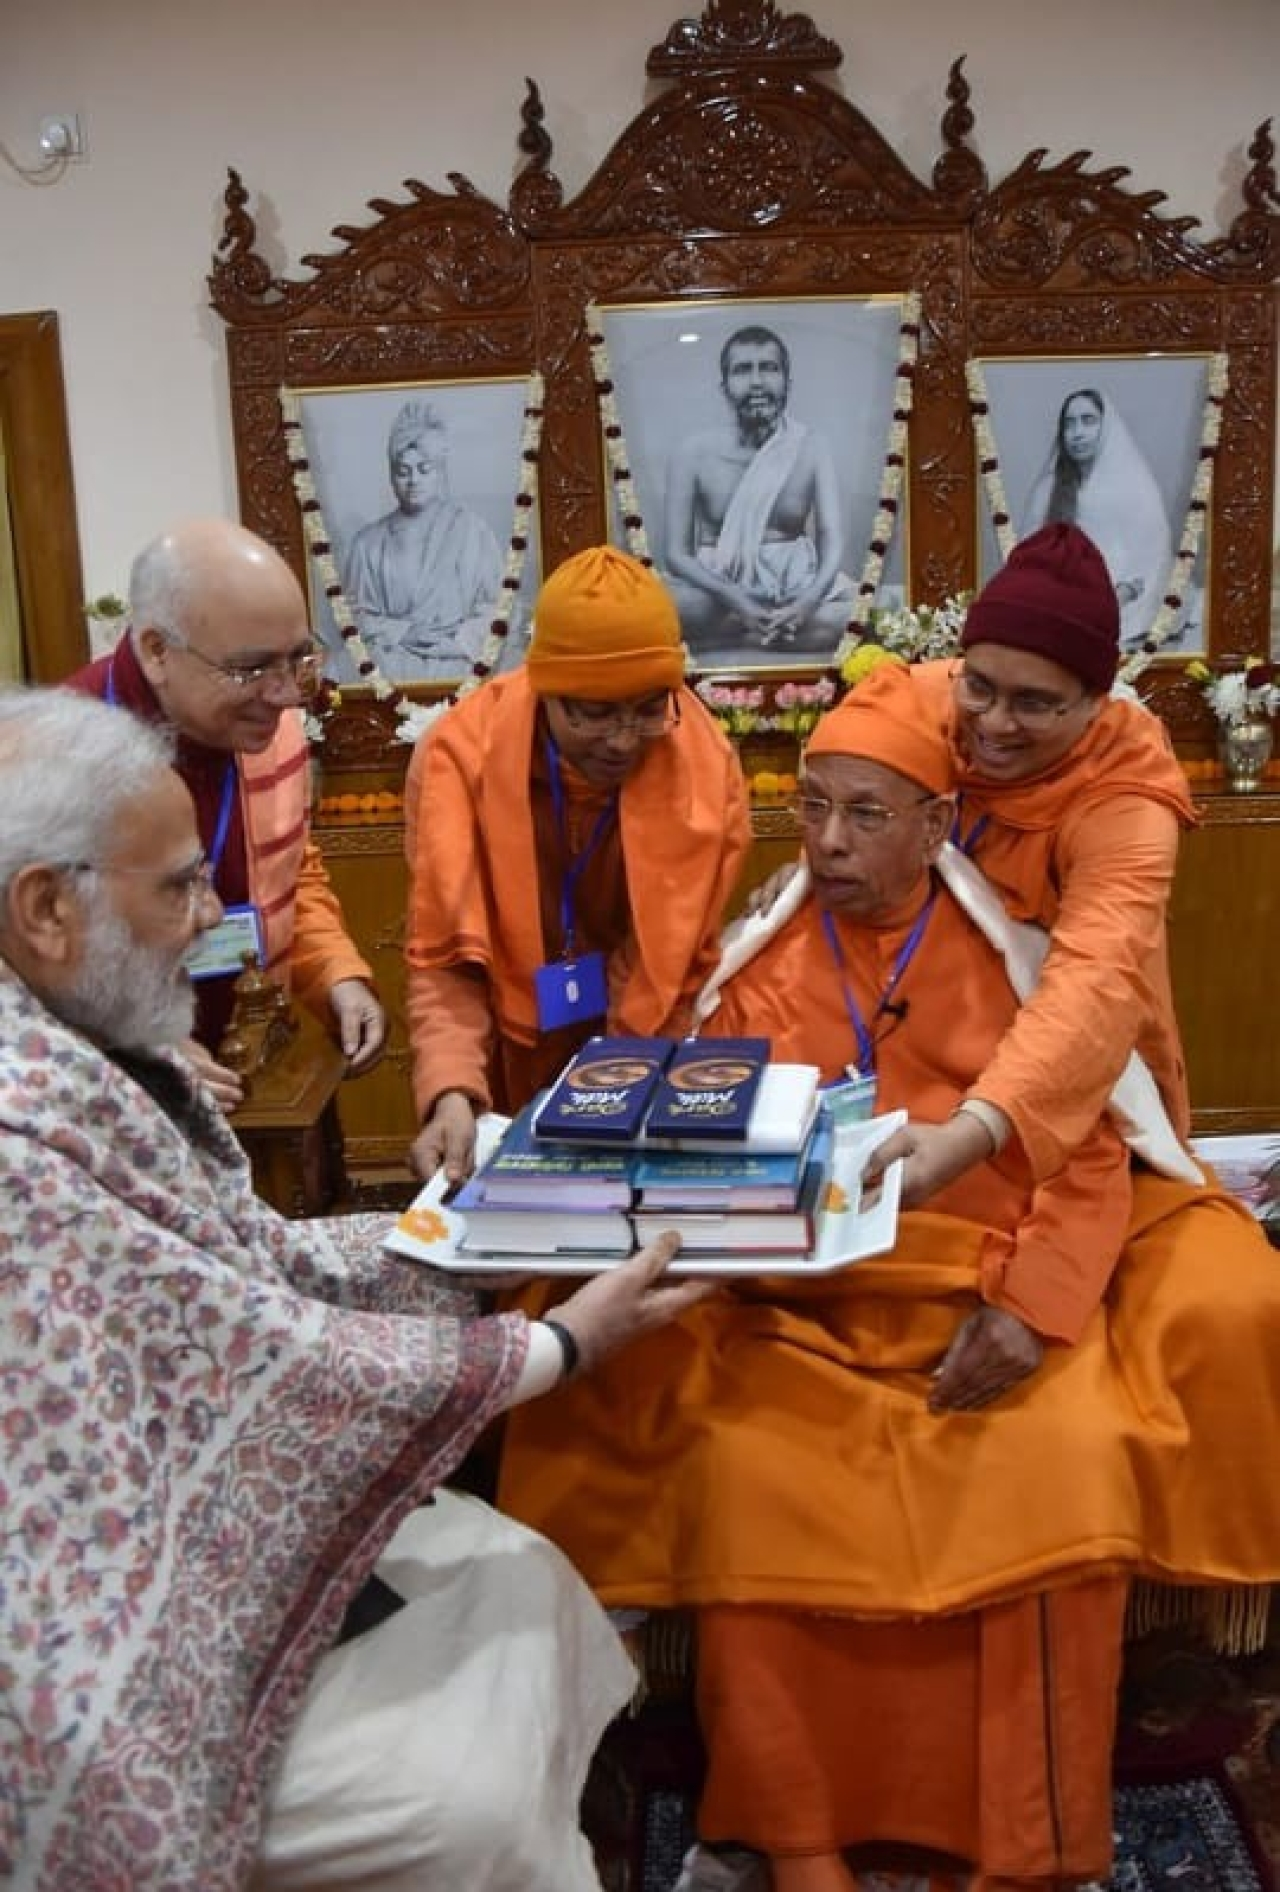 Monks of the order gifting the PM some books.